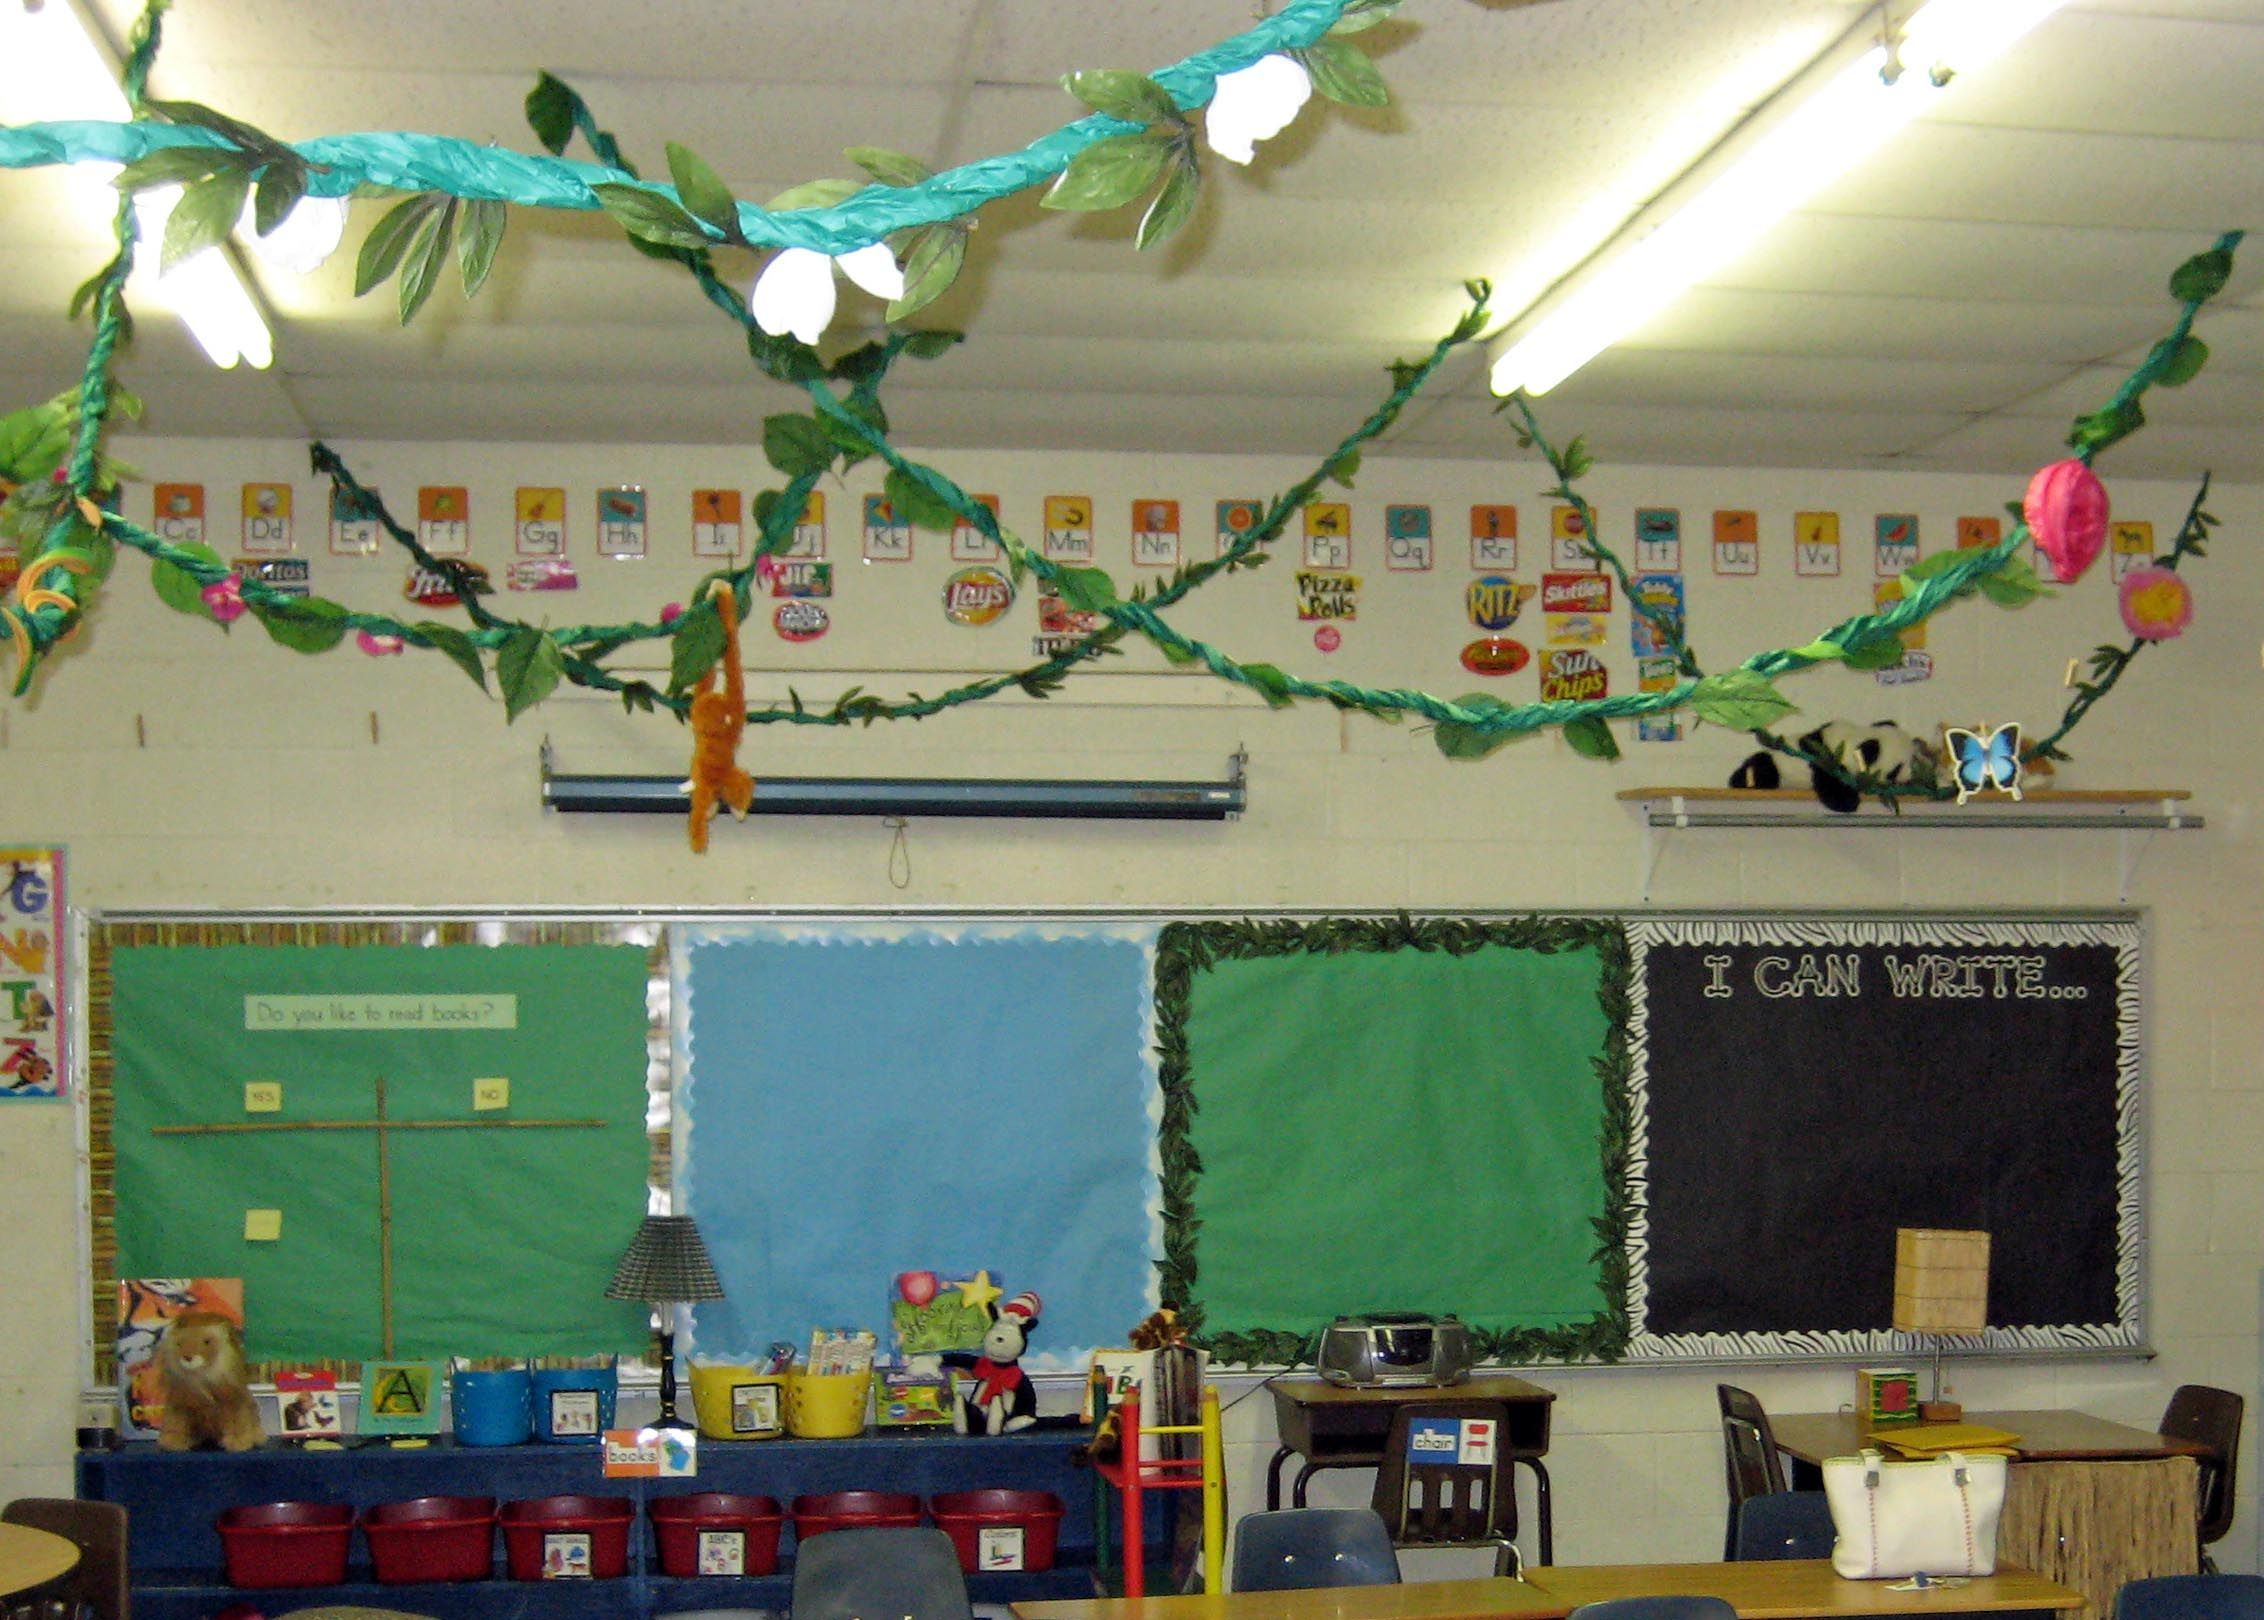 Jungle Theme Classroom Decorating Ideas Part - 20: Jungle Theme Classroom · For Ceiling. Decorate With Flowers And Butterflies